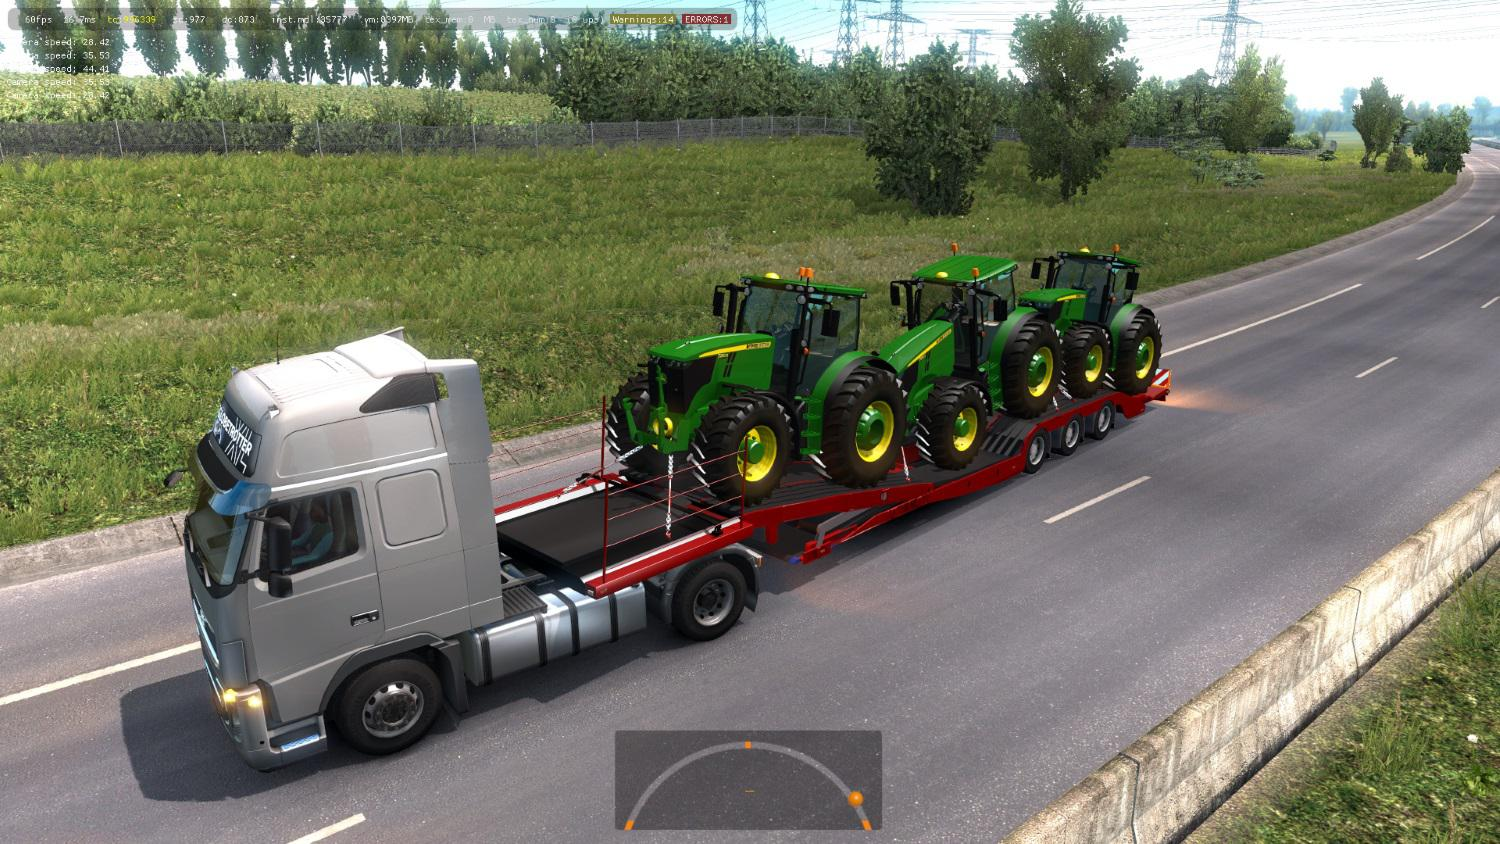 ETS2 - Trailers for Transporting Tractors and Equipment in Traffic Mod (1.36.x)